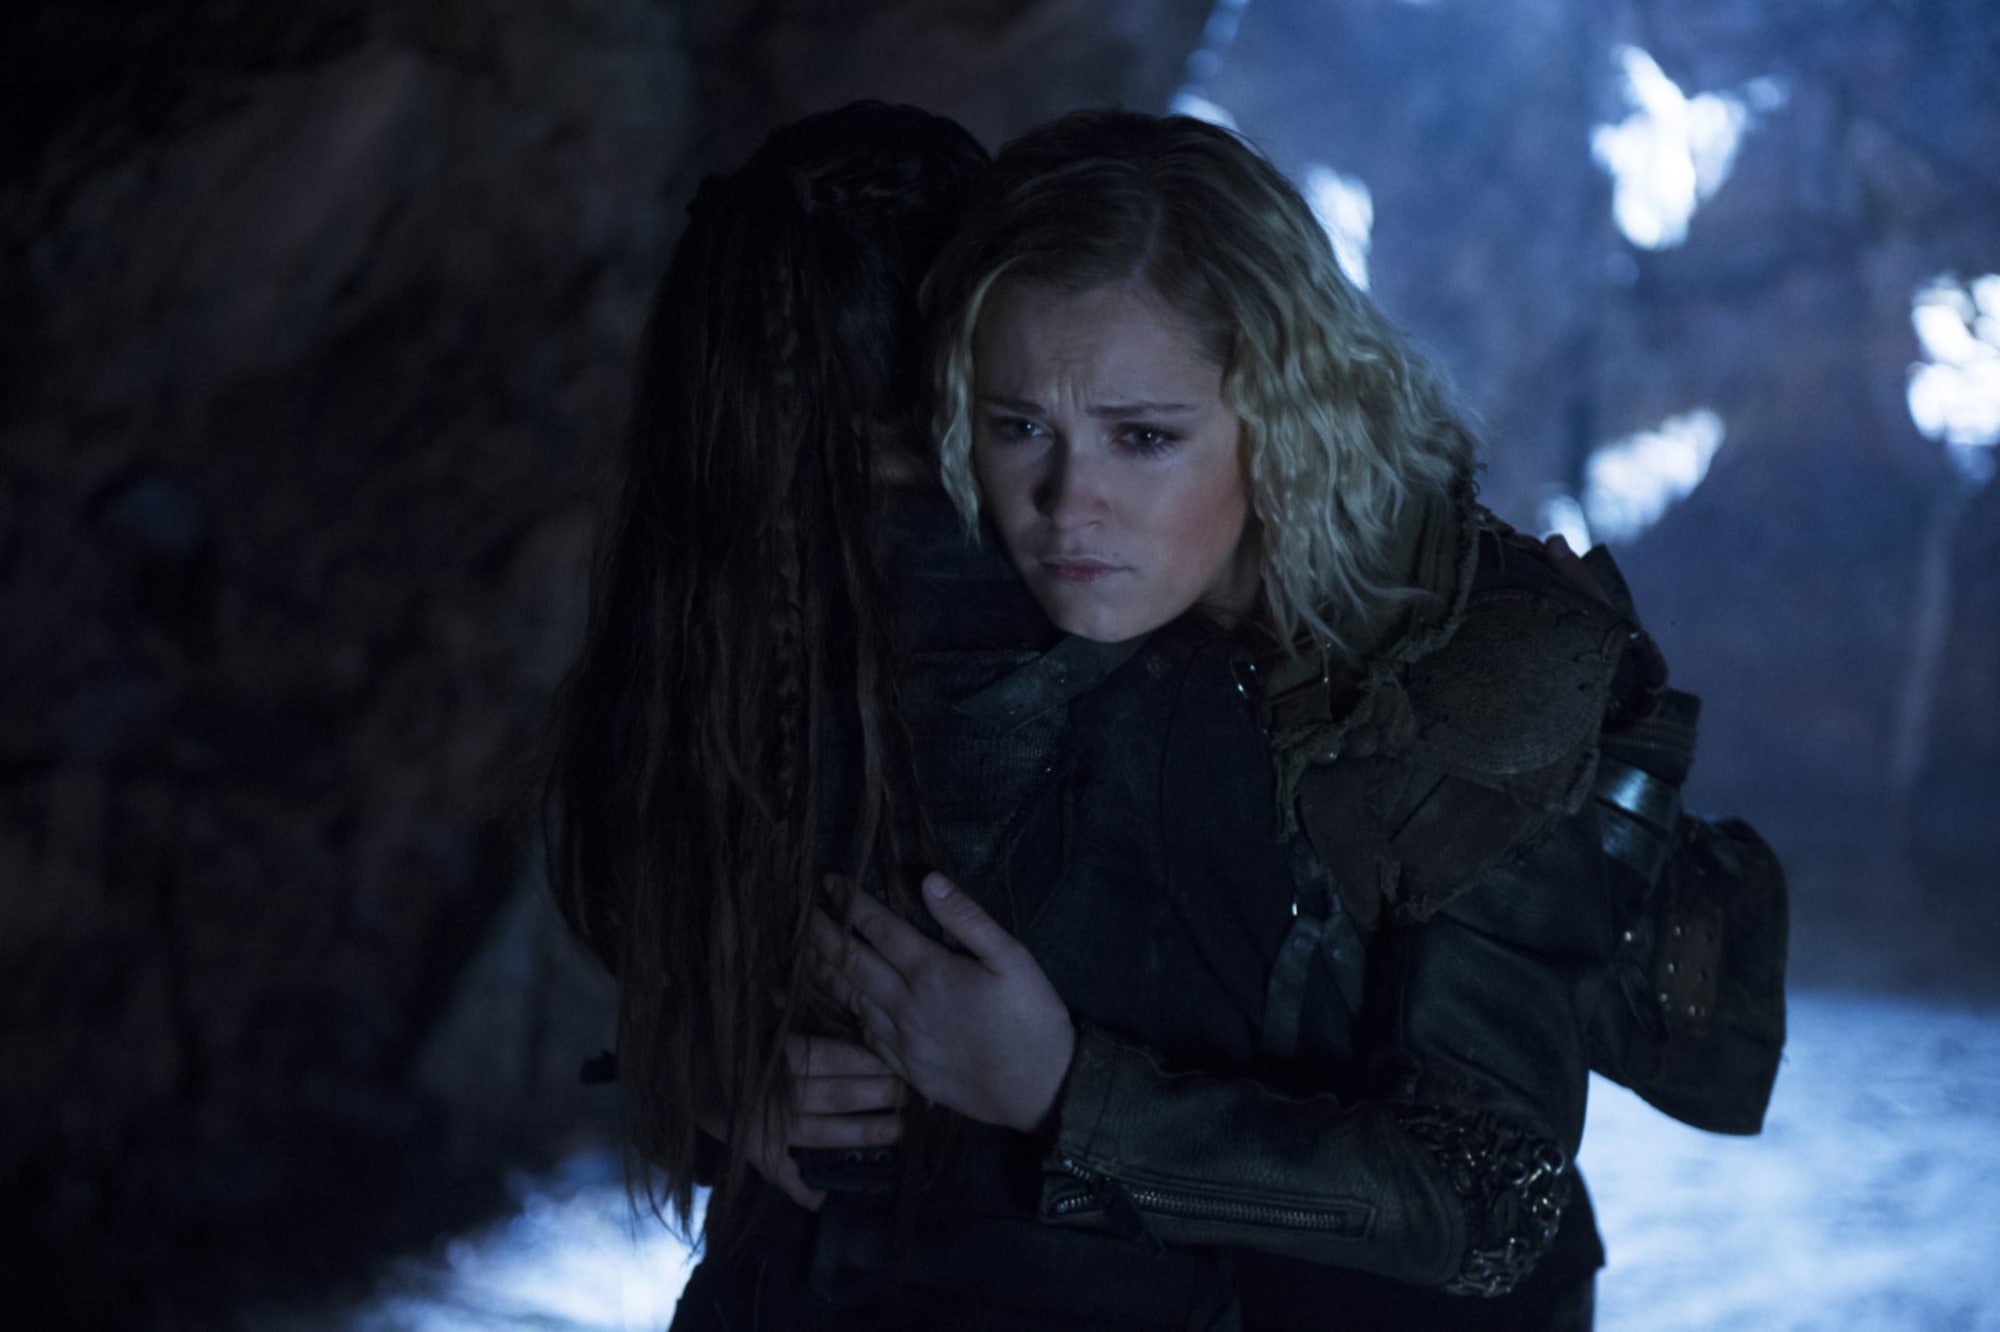 watch free online the 100 season 5